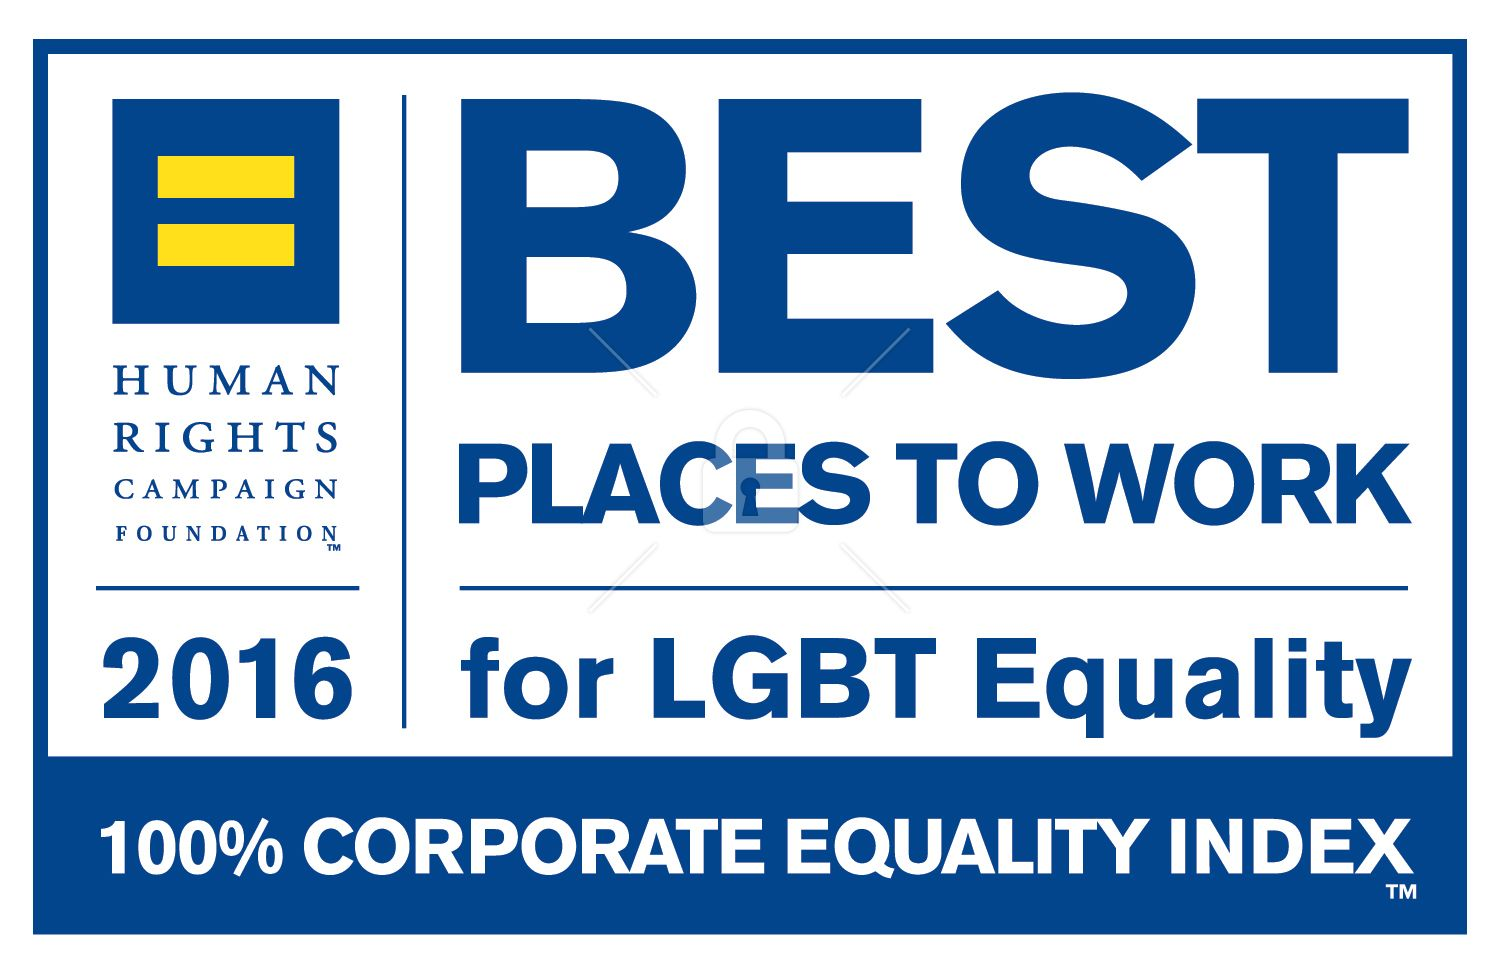 The Hartford Named A Best Place To Work For LGBT Equality For Eighth Year